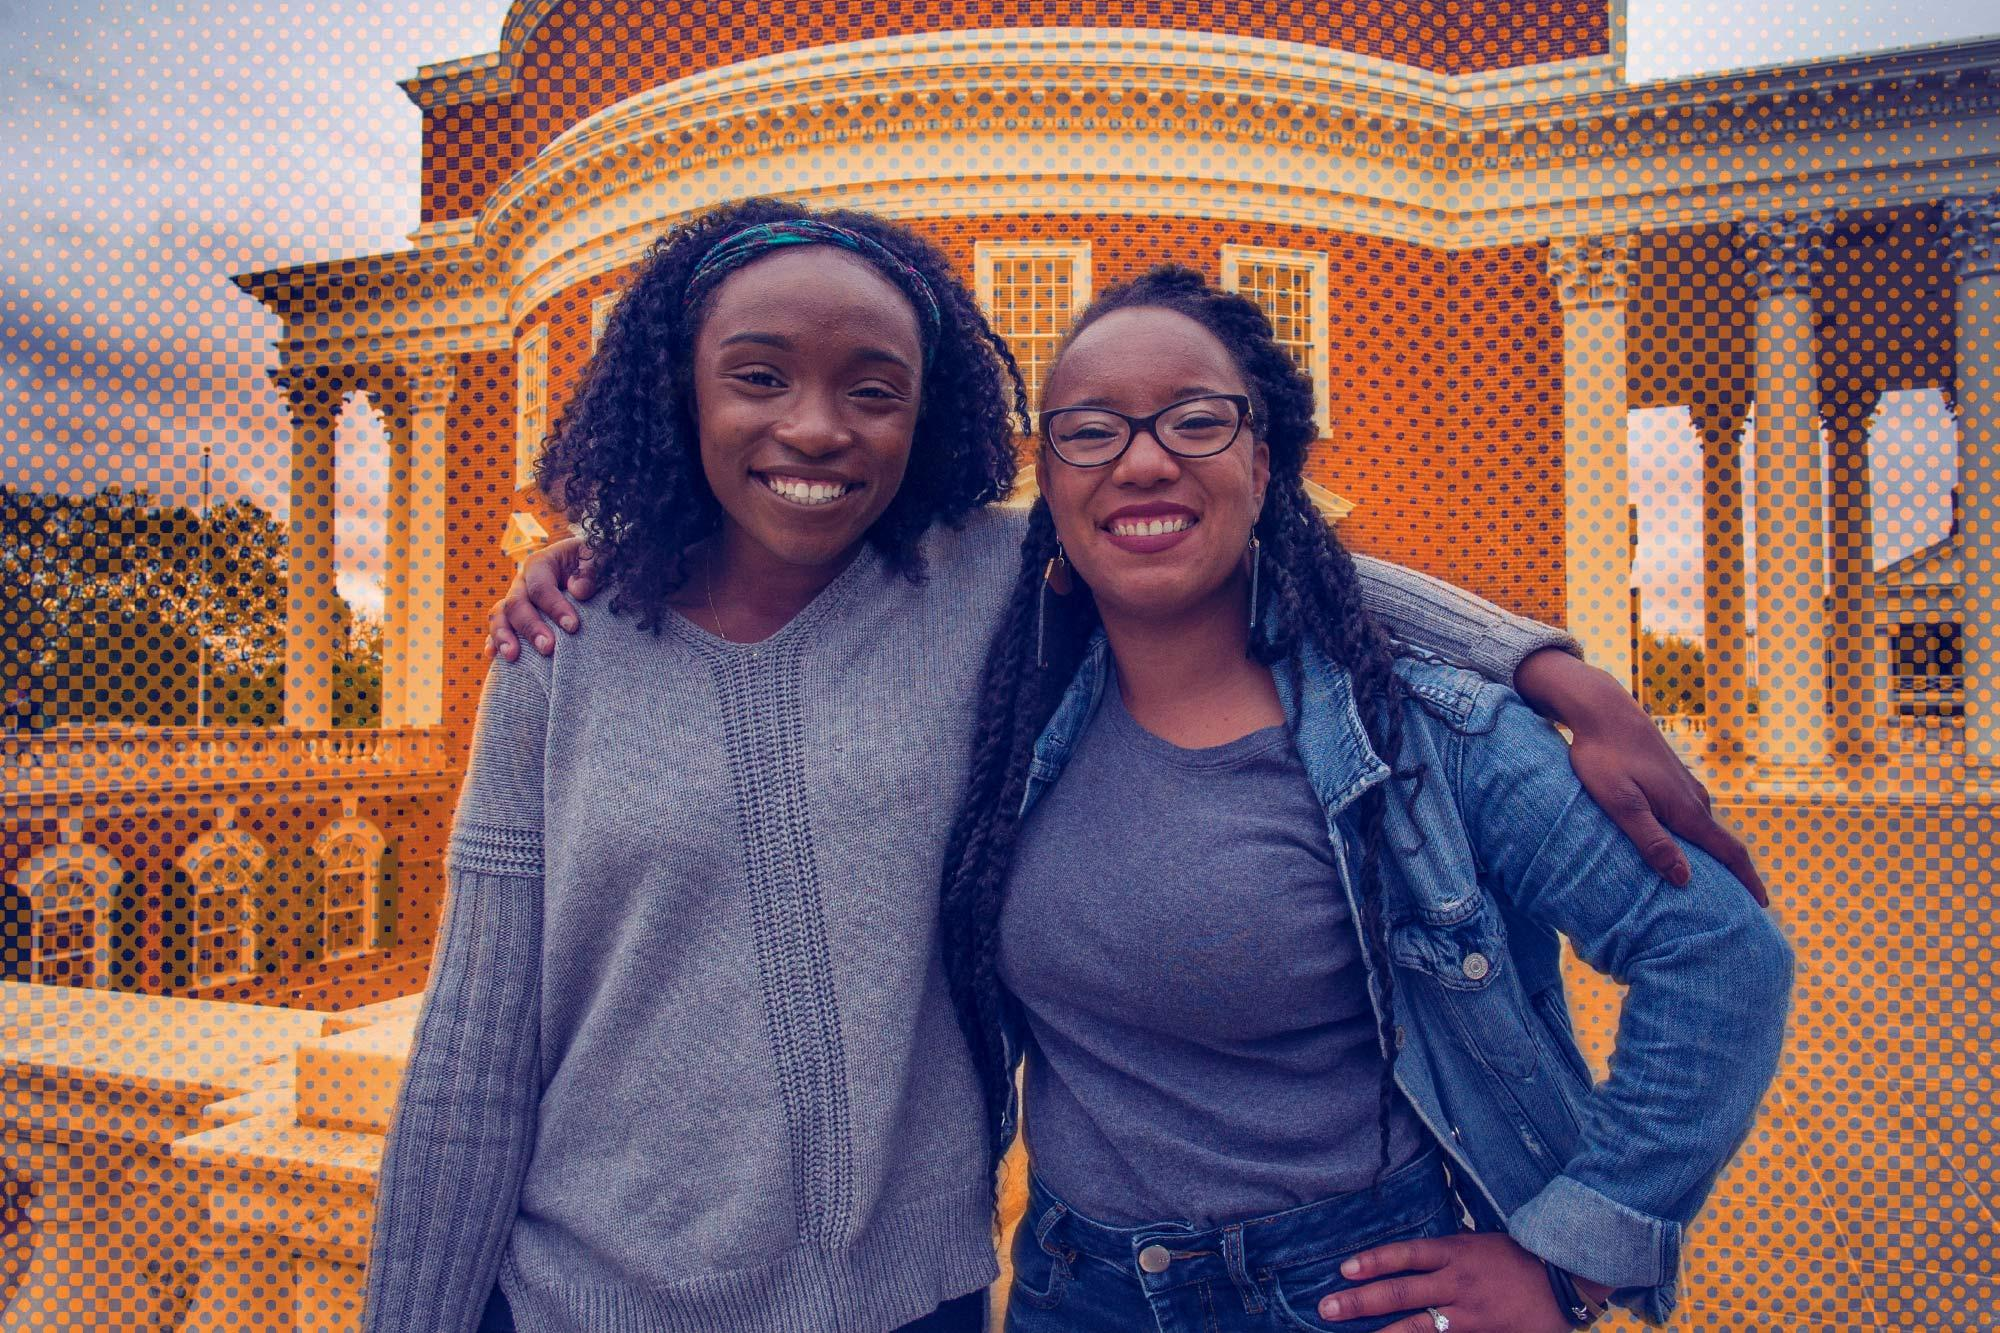 Shontell and Tonyette White, 22 and 26 respectively, will walk the Lawn Sunday as part of the Class of 2017.